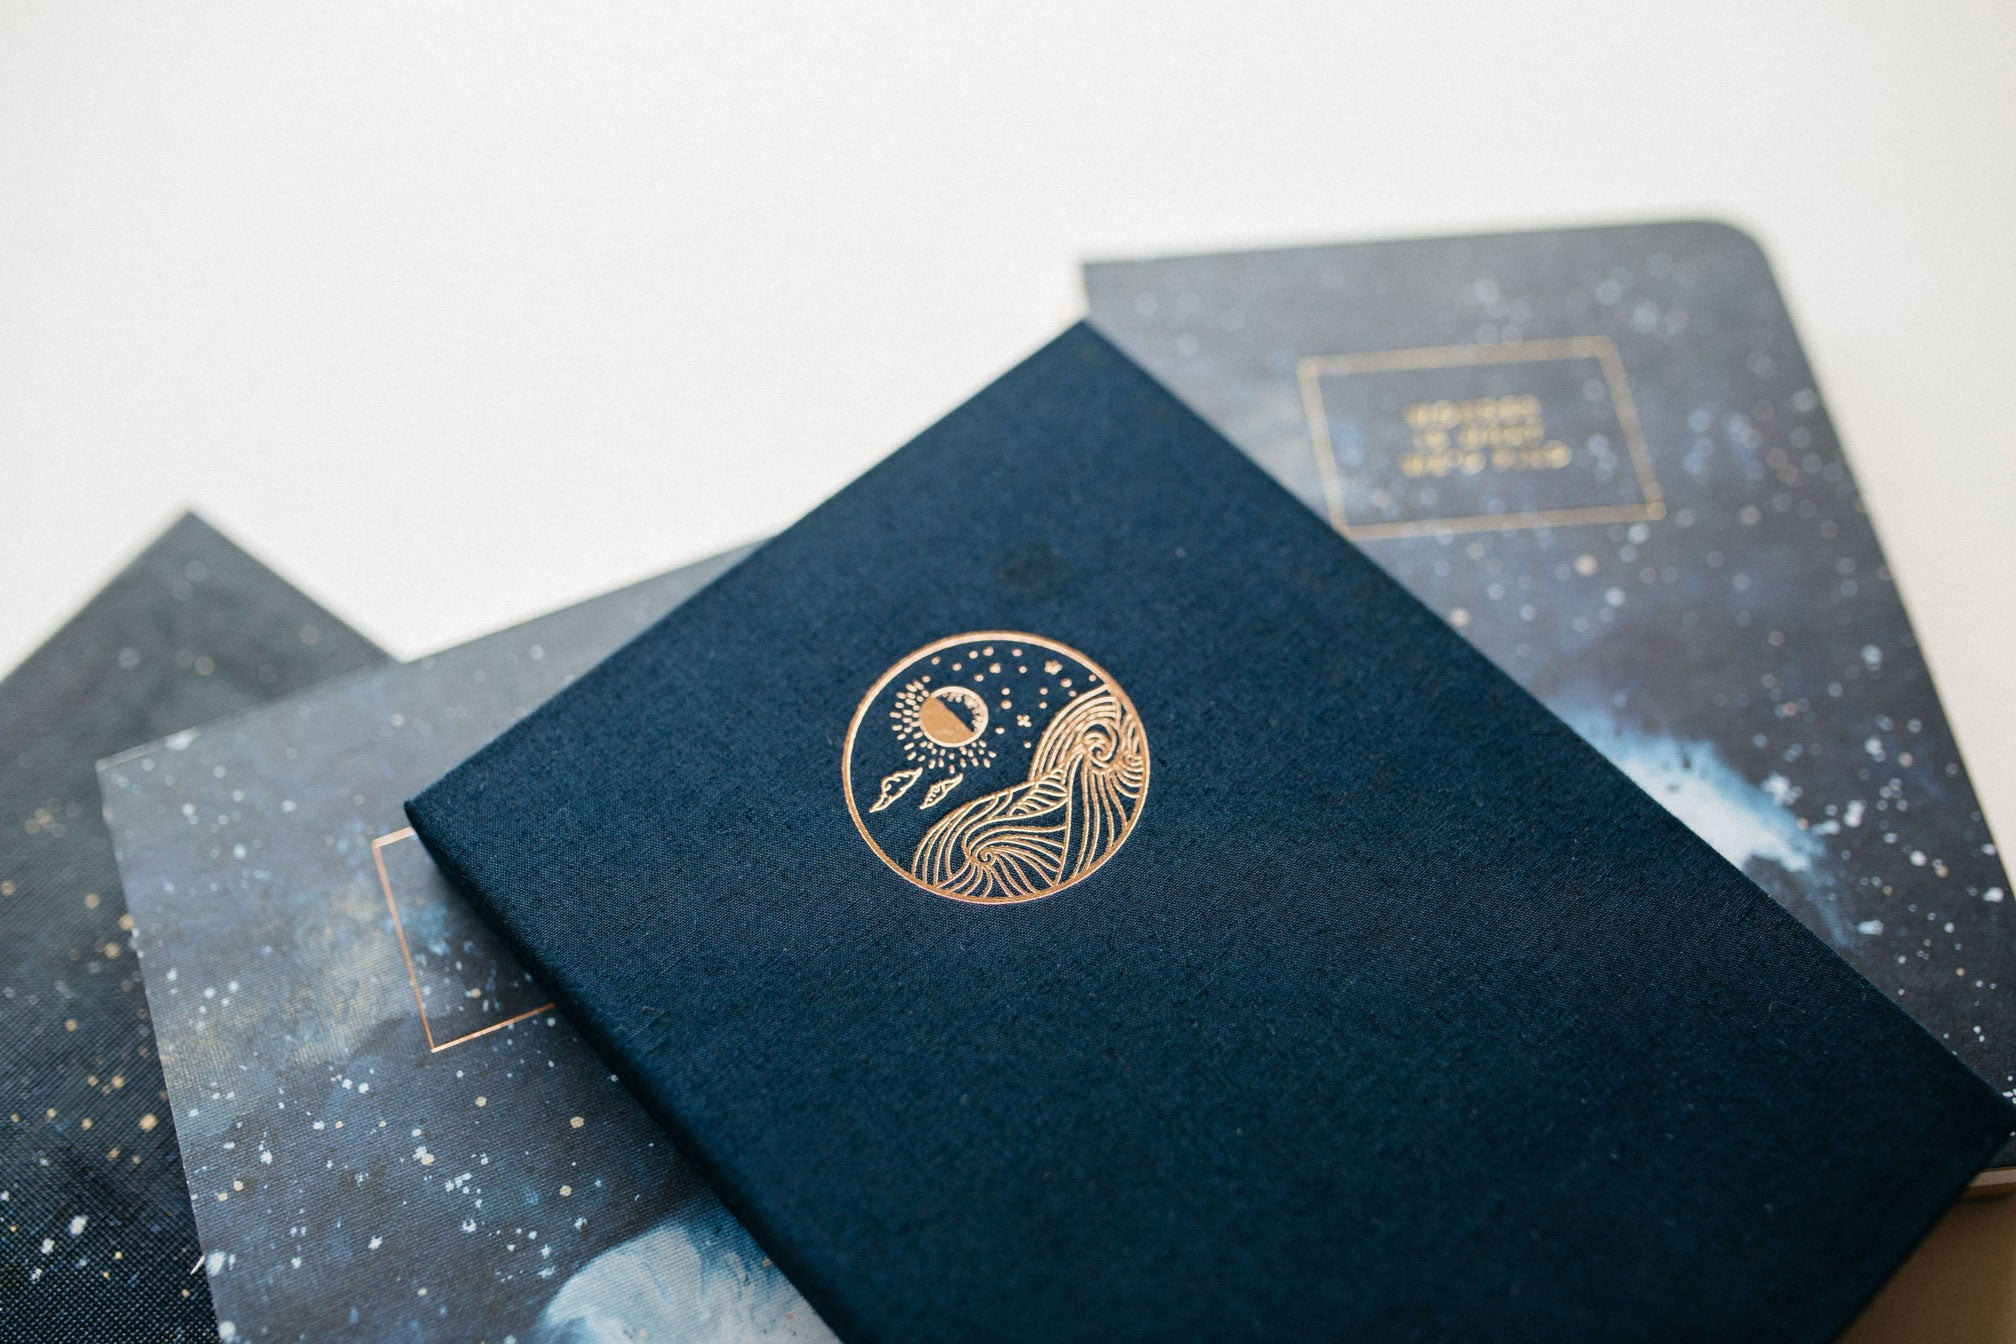 WONDER / Sun & Moon - Moon Rise (fabric) Sketchbook